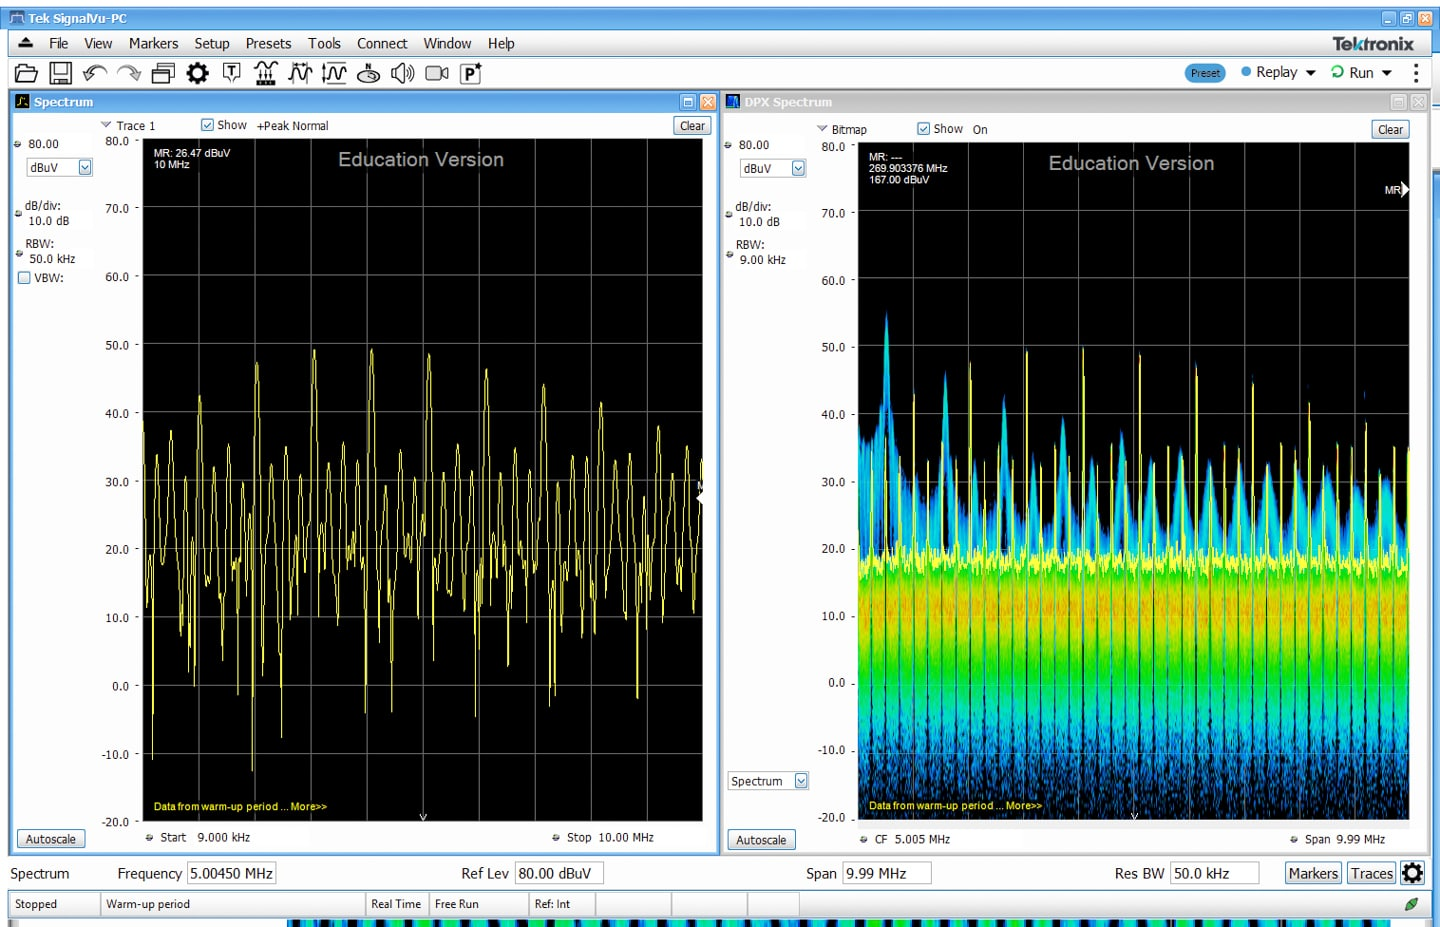 Emi Troubleshooting With Real Time Spectrum Analyzers Interference The Diagram Above Is Peak 3dbs Which Shows That Filter Figure 6 Again Without Moving Probe We See Mode 3 Much Increased Narrow Band Emissions Measuring About 10 Db Higher Than Modes 1 And 2